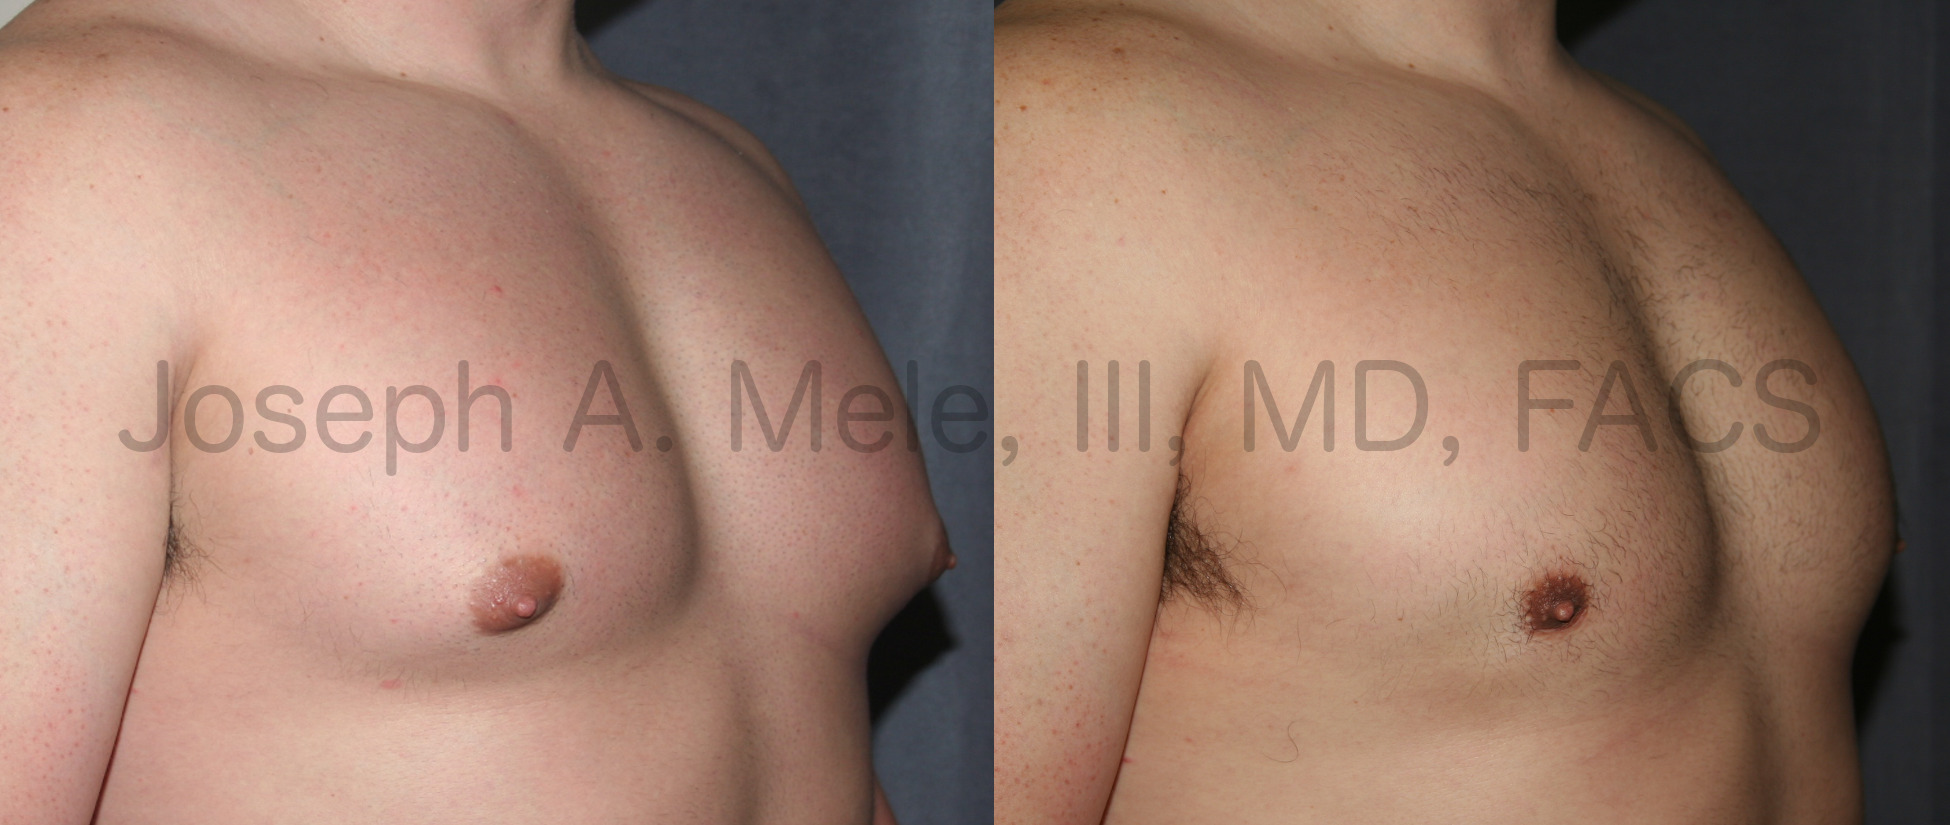 Gynecomastia Reduction is performed in several ways. Often, a combination of Liposuction for fat removal and direct excision of the firm breast tissue located beneath the nipple is the best combination.